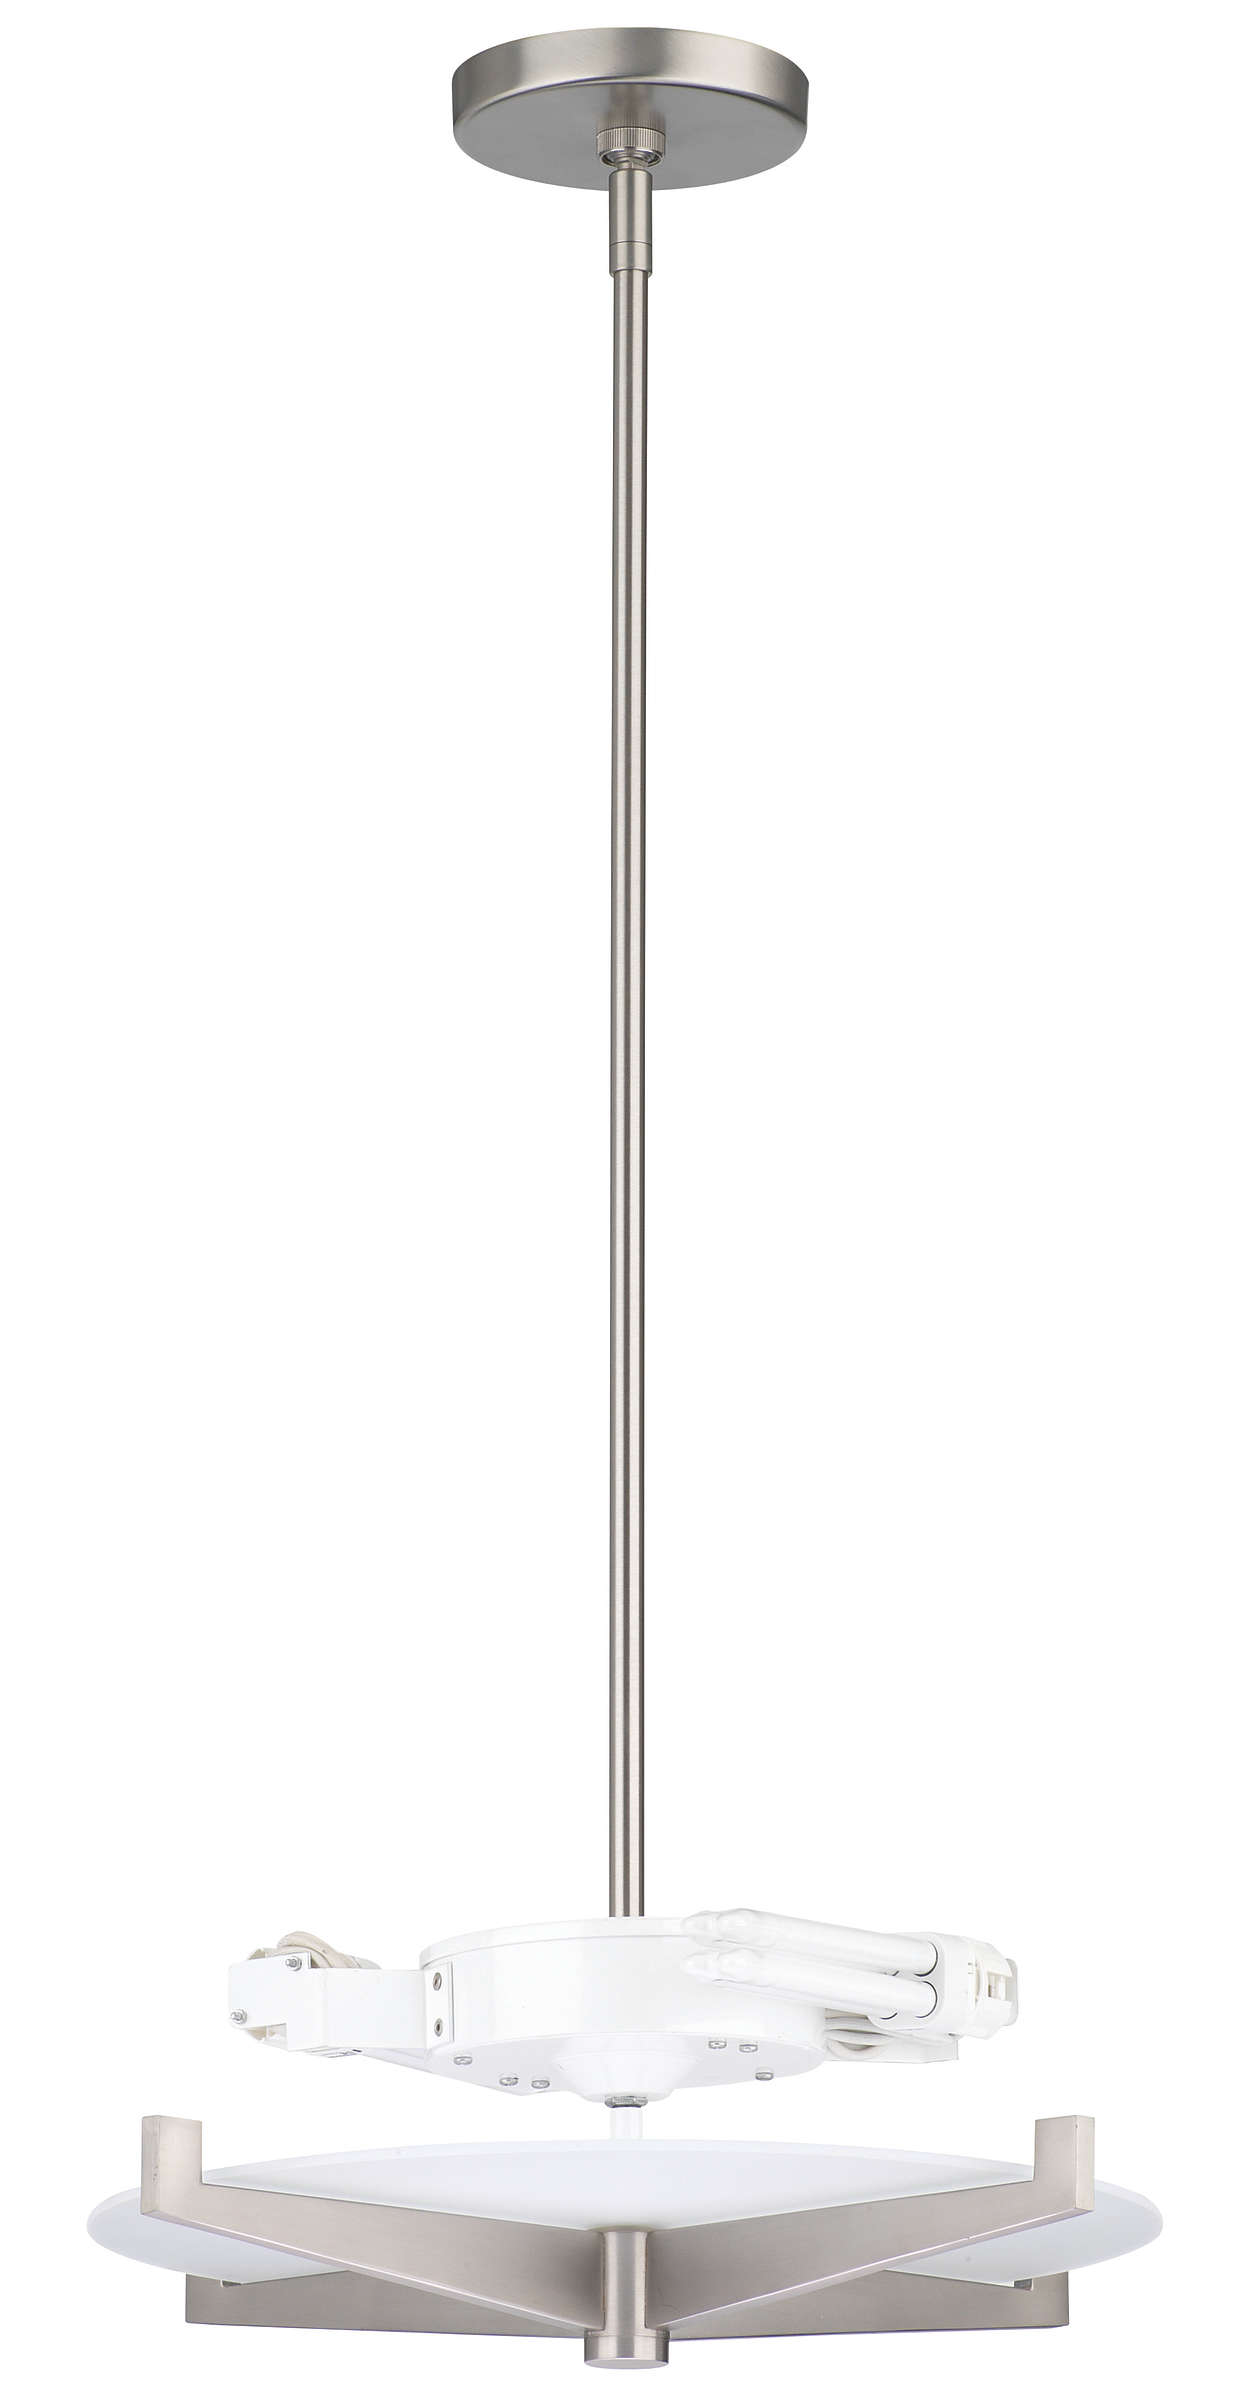 Fisher Island 2-light Pendant, Satin Nickel finish